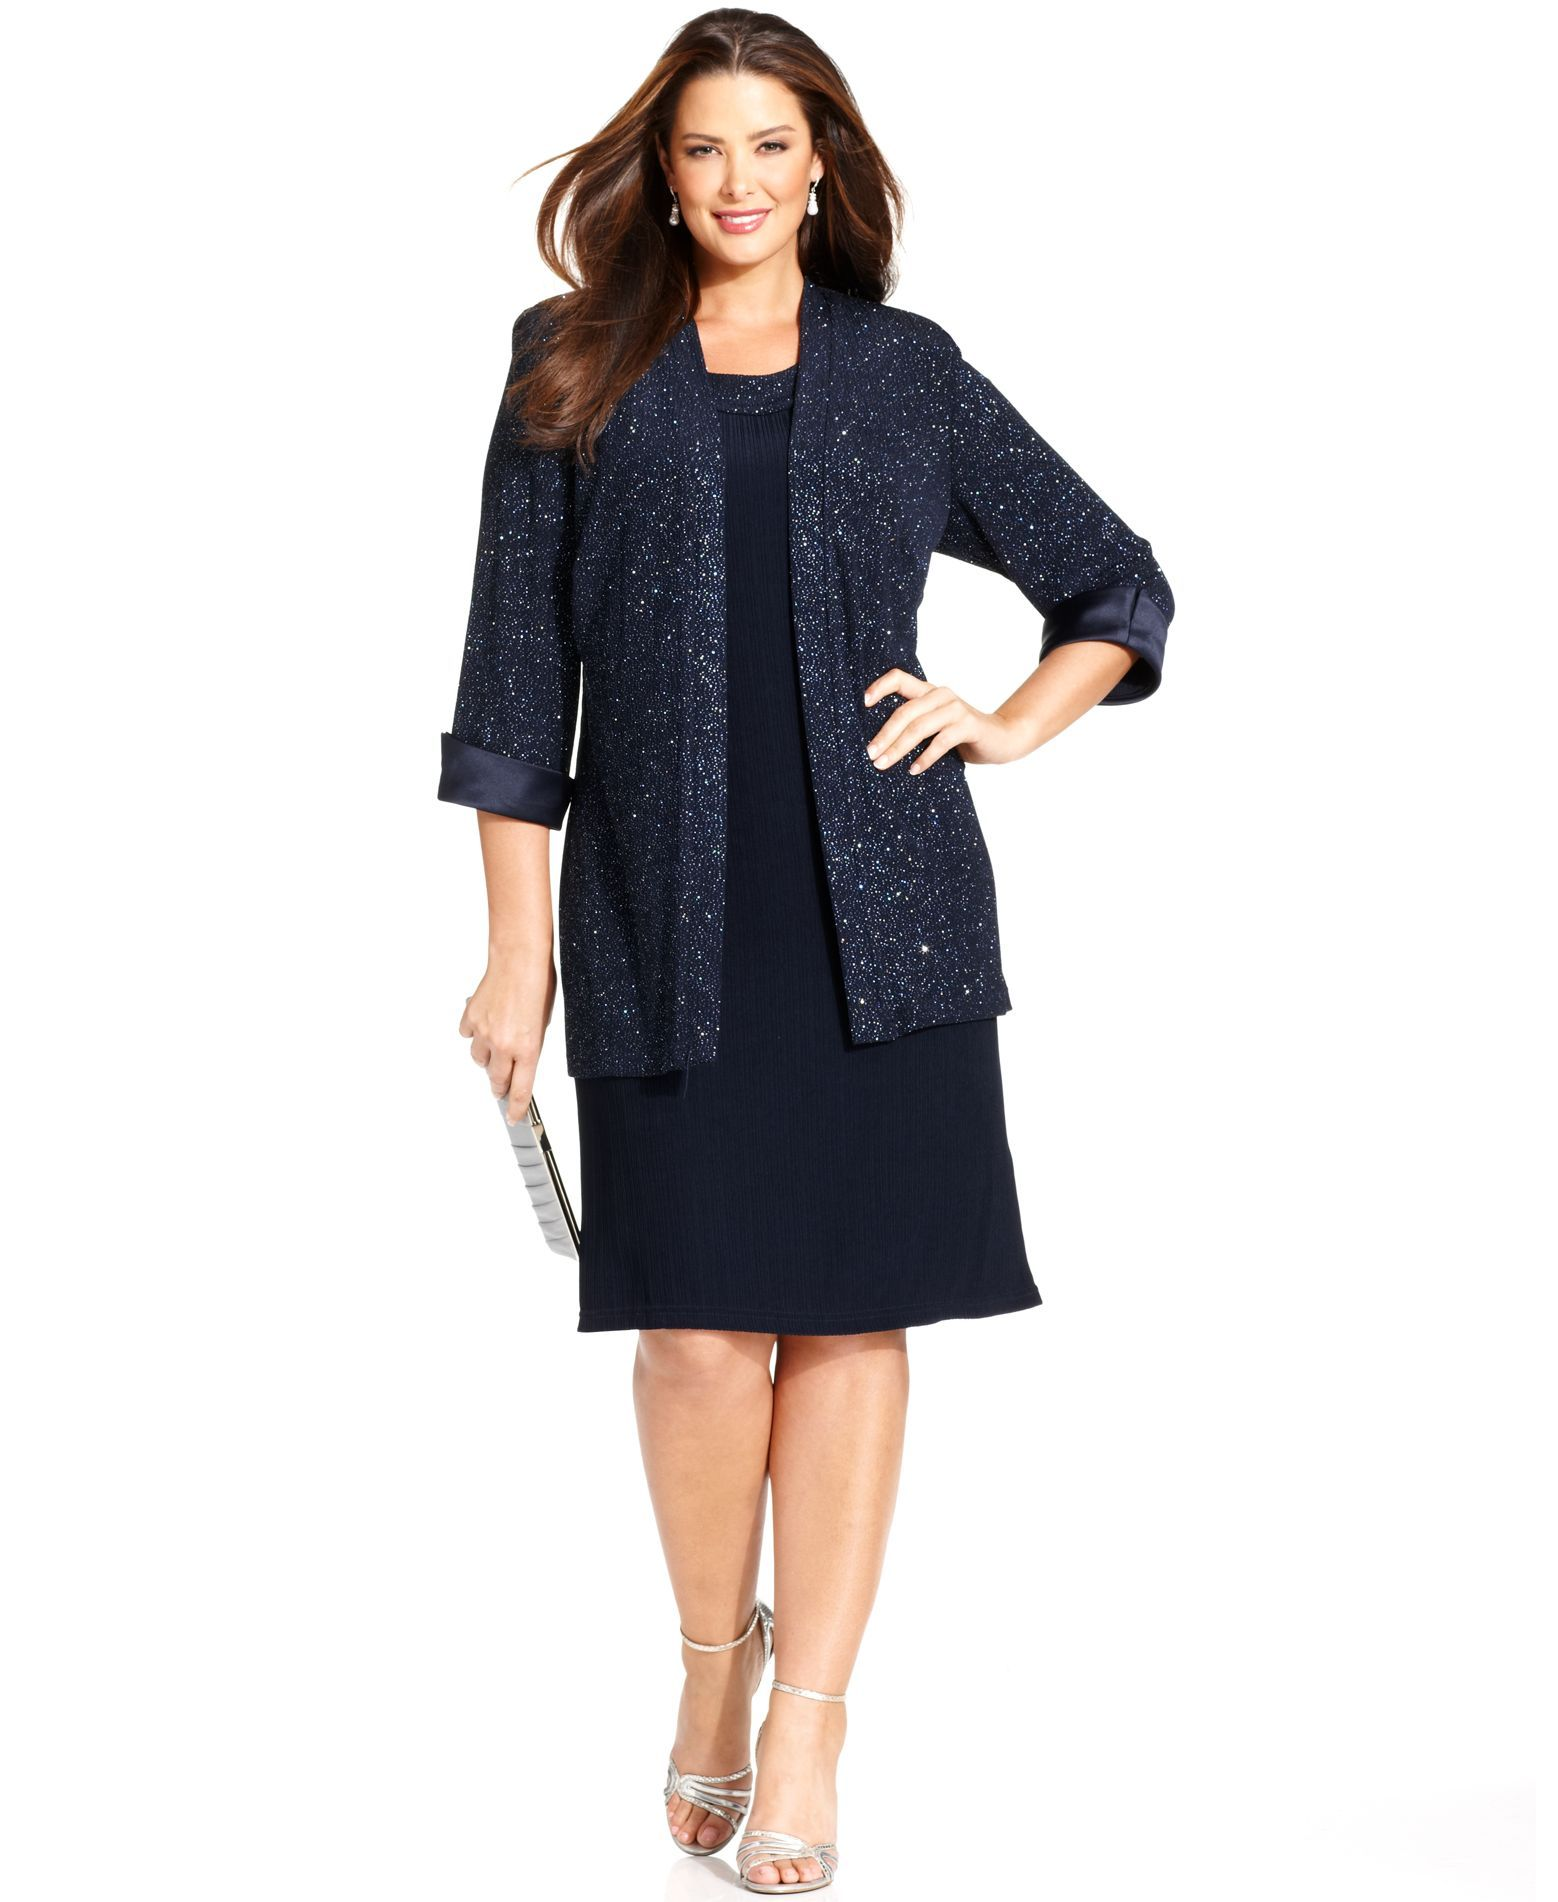 Plus size jacket dress for wedding  Love this outfit It would be a great one to wear to the wedding Ium